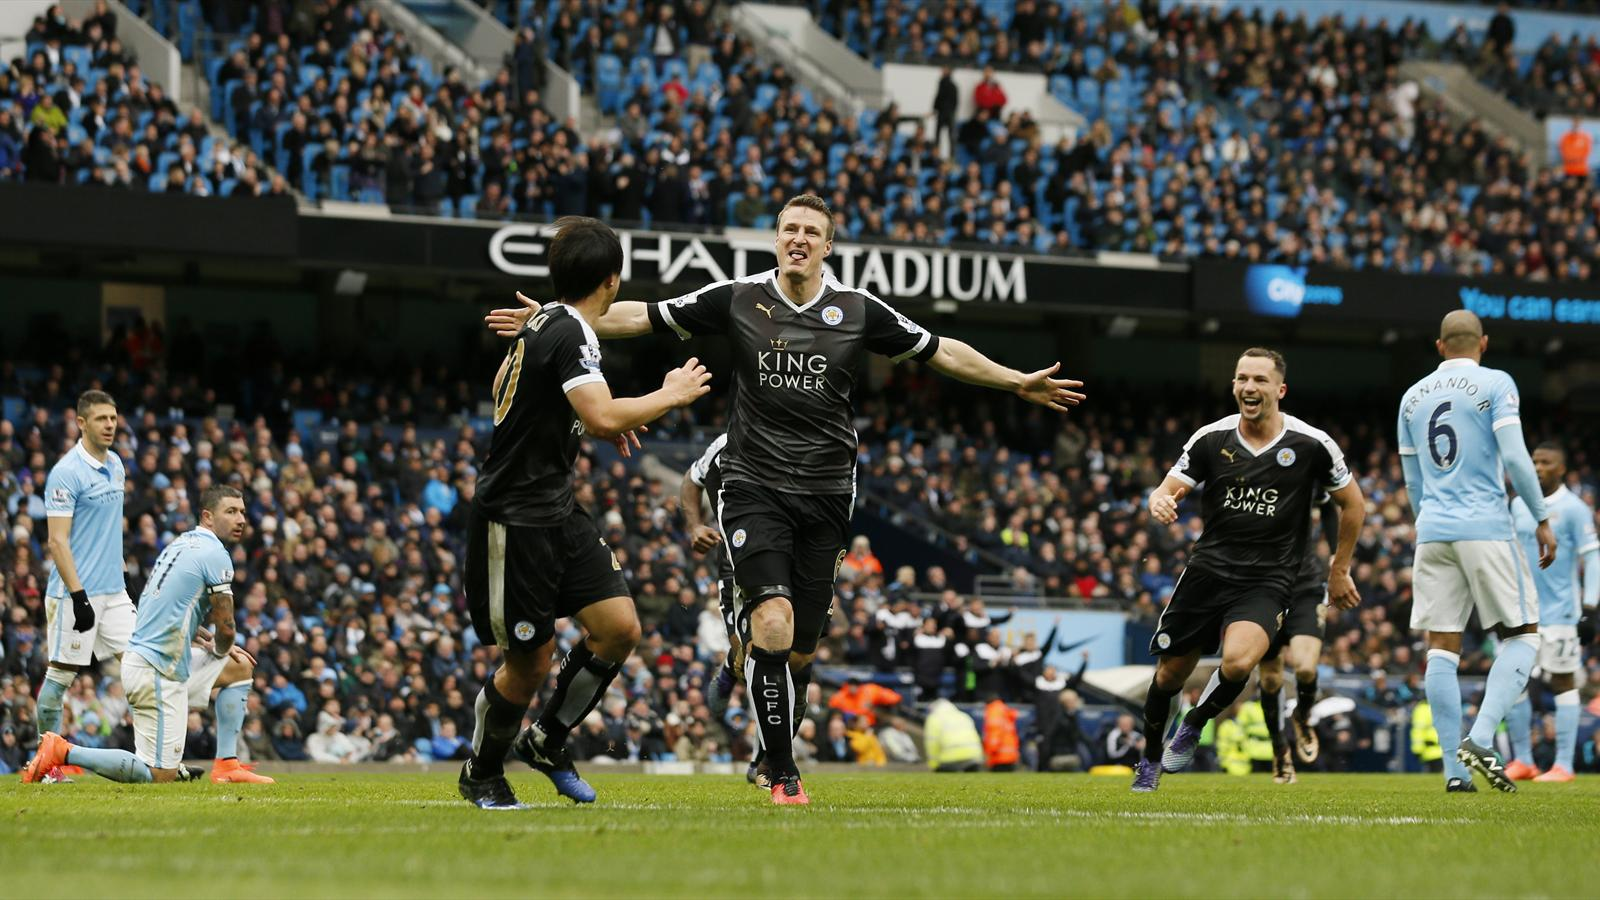 Robert Huth celebrates scoring for Leicester City against Manchester City